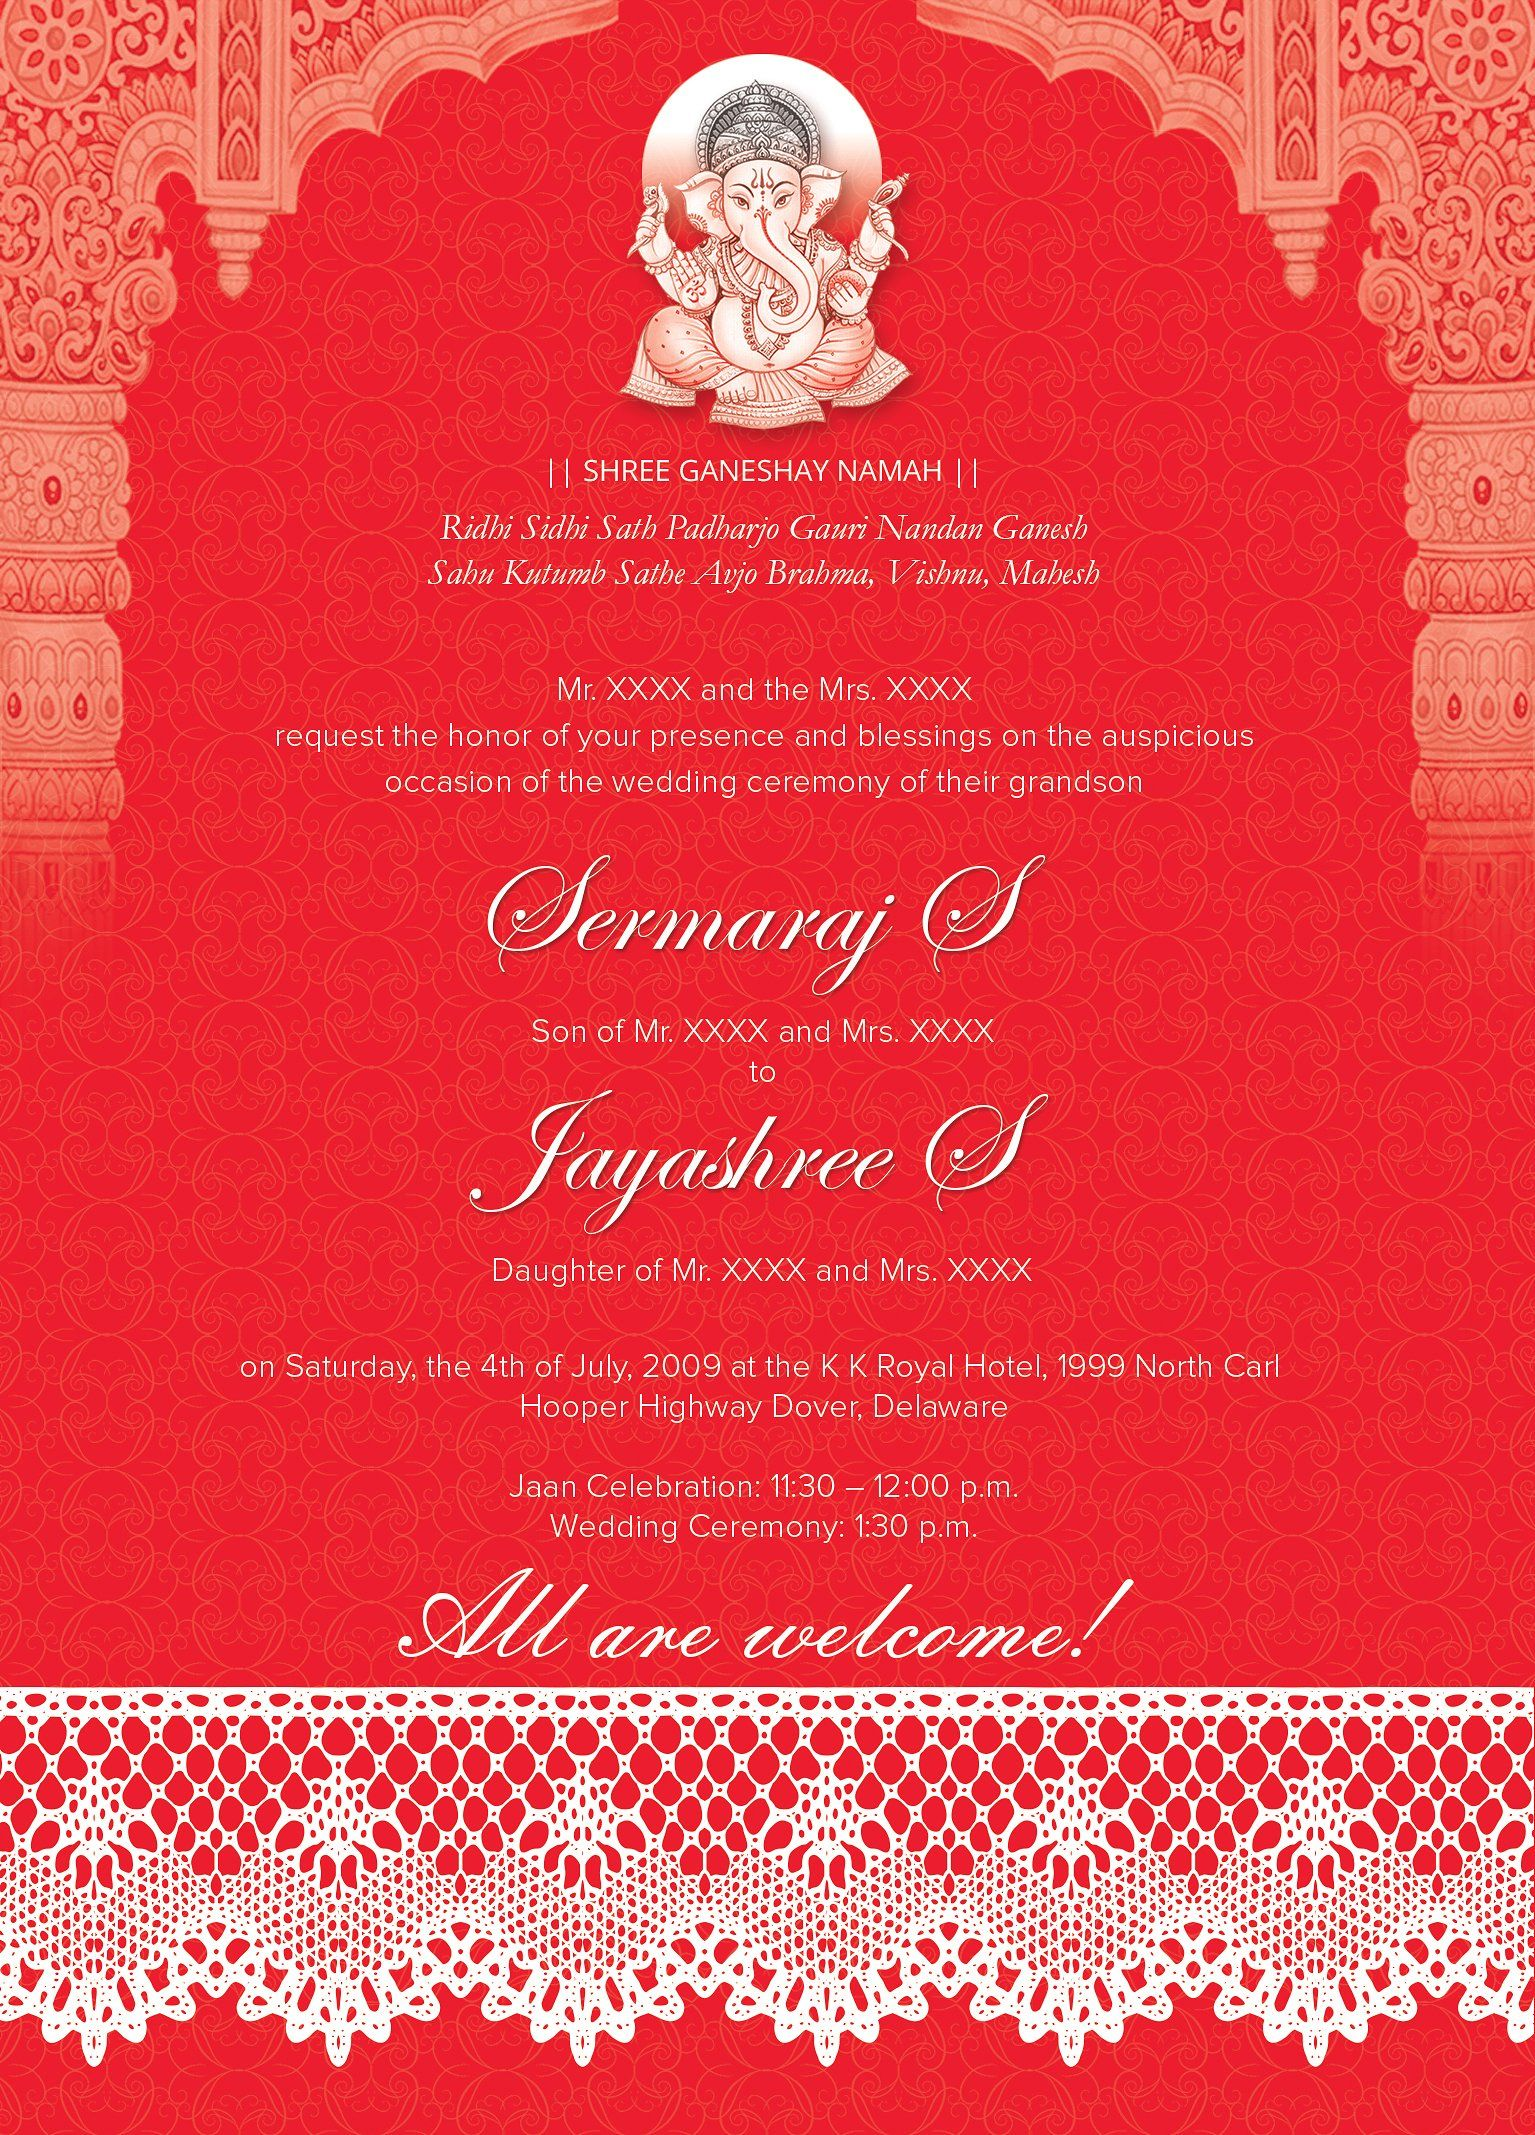 Indian Wedding Card 01 3 Colors By Studio Designs On Creativem Hindu Wedding Invitation Cards Indian Wedding Invitation Cards Wedding Invitation Card Design